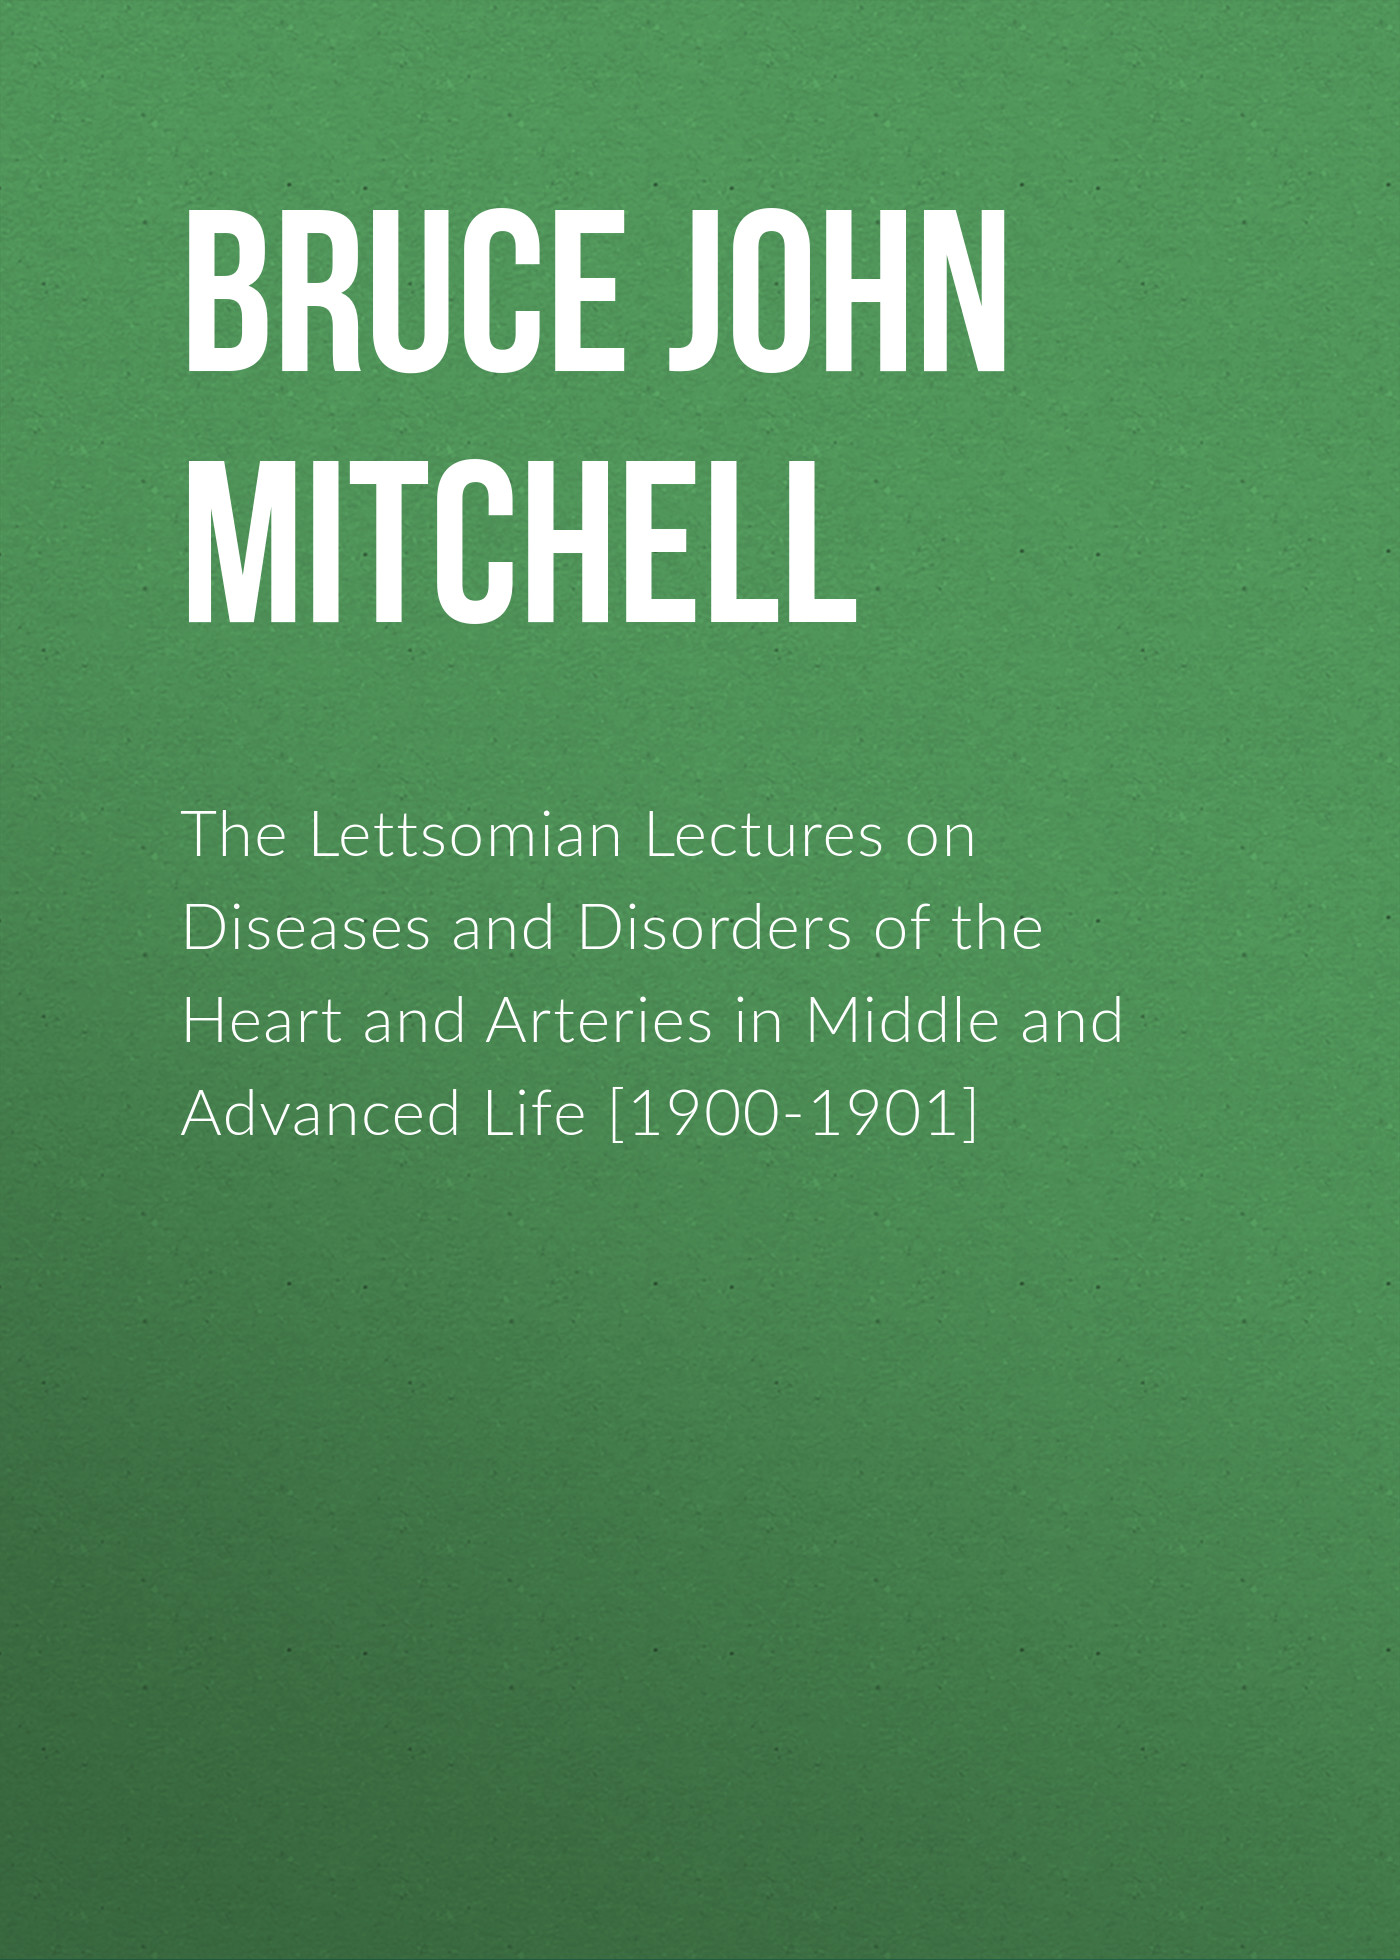 Bruce John Mitchell The Lettsomian Lectures on Diseases and Disorders of the Heart and Arteries in Middle and Advanced Life [1900-1901] jane morris abc of eating disorders